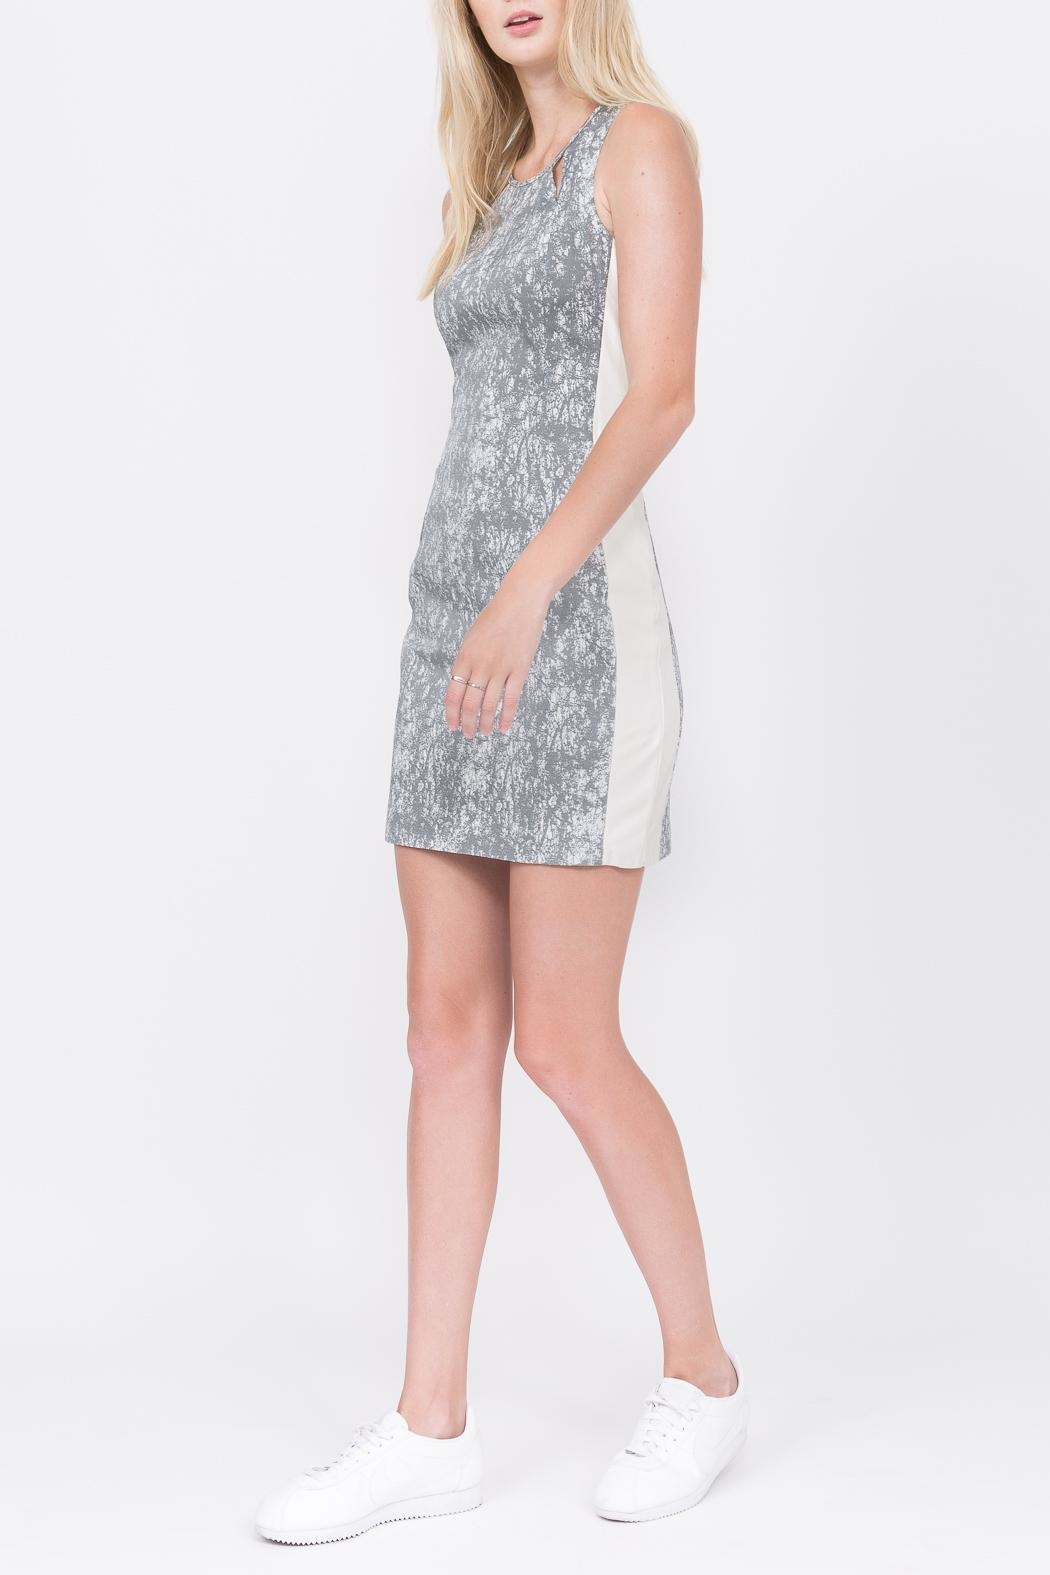 QUINN Calypso Paneled Dress - Front Cropped Image